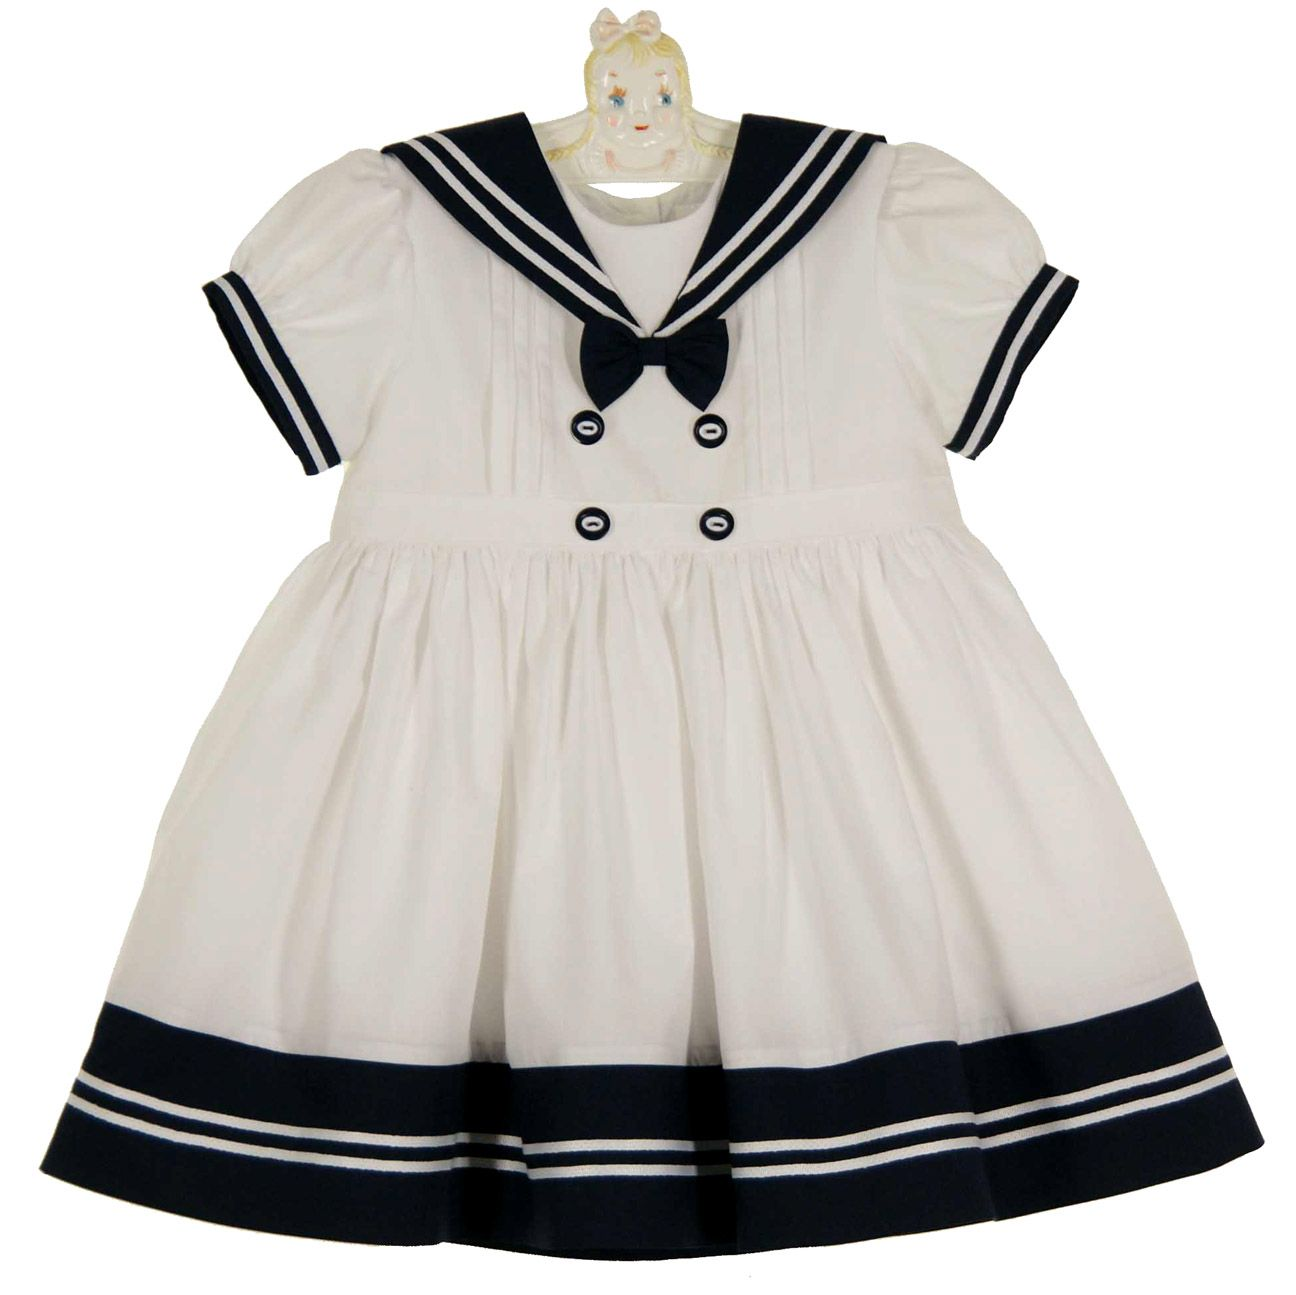 Sarah Louise White Sailor Dress White And Navy Sailor Dress For Baby Girls White And Navy Sailo Baby Girl Pageant Dresses Girls Fashion Dress Baby Sailor Dress